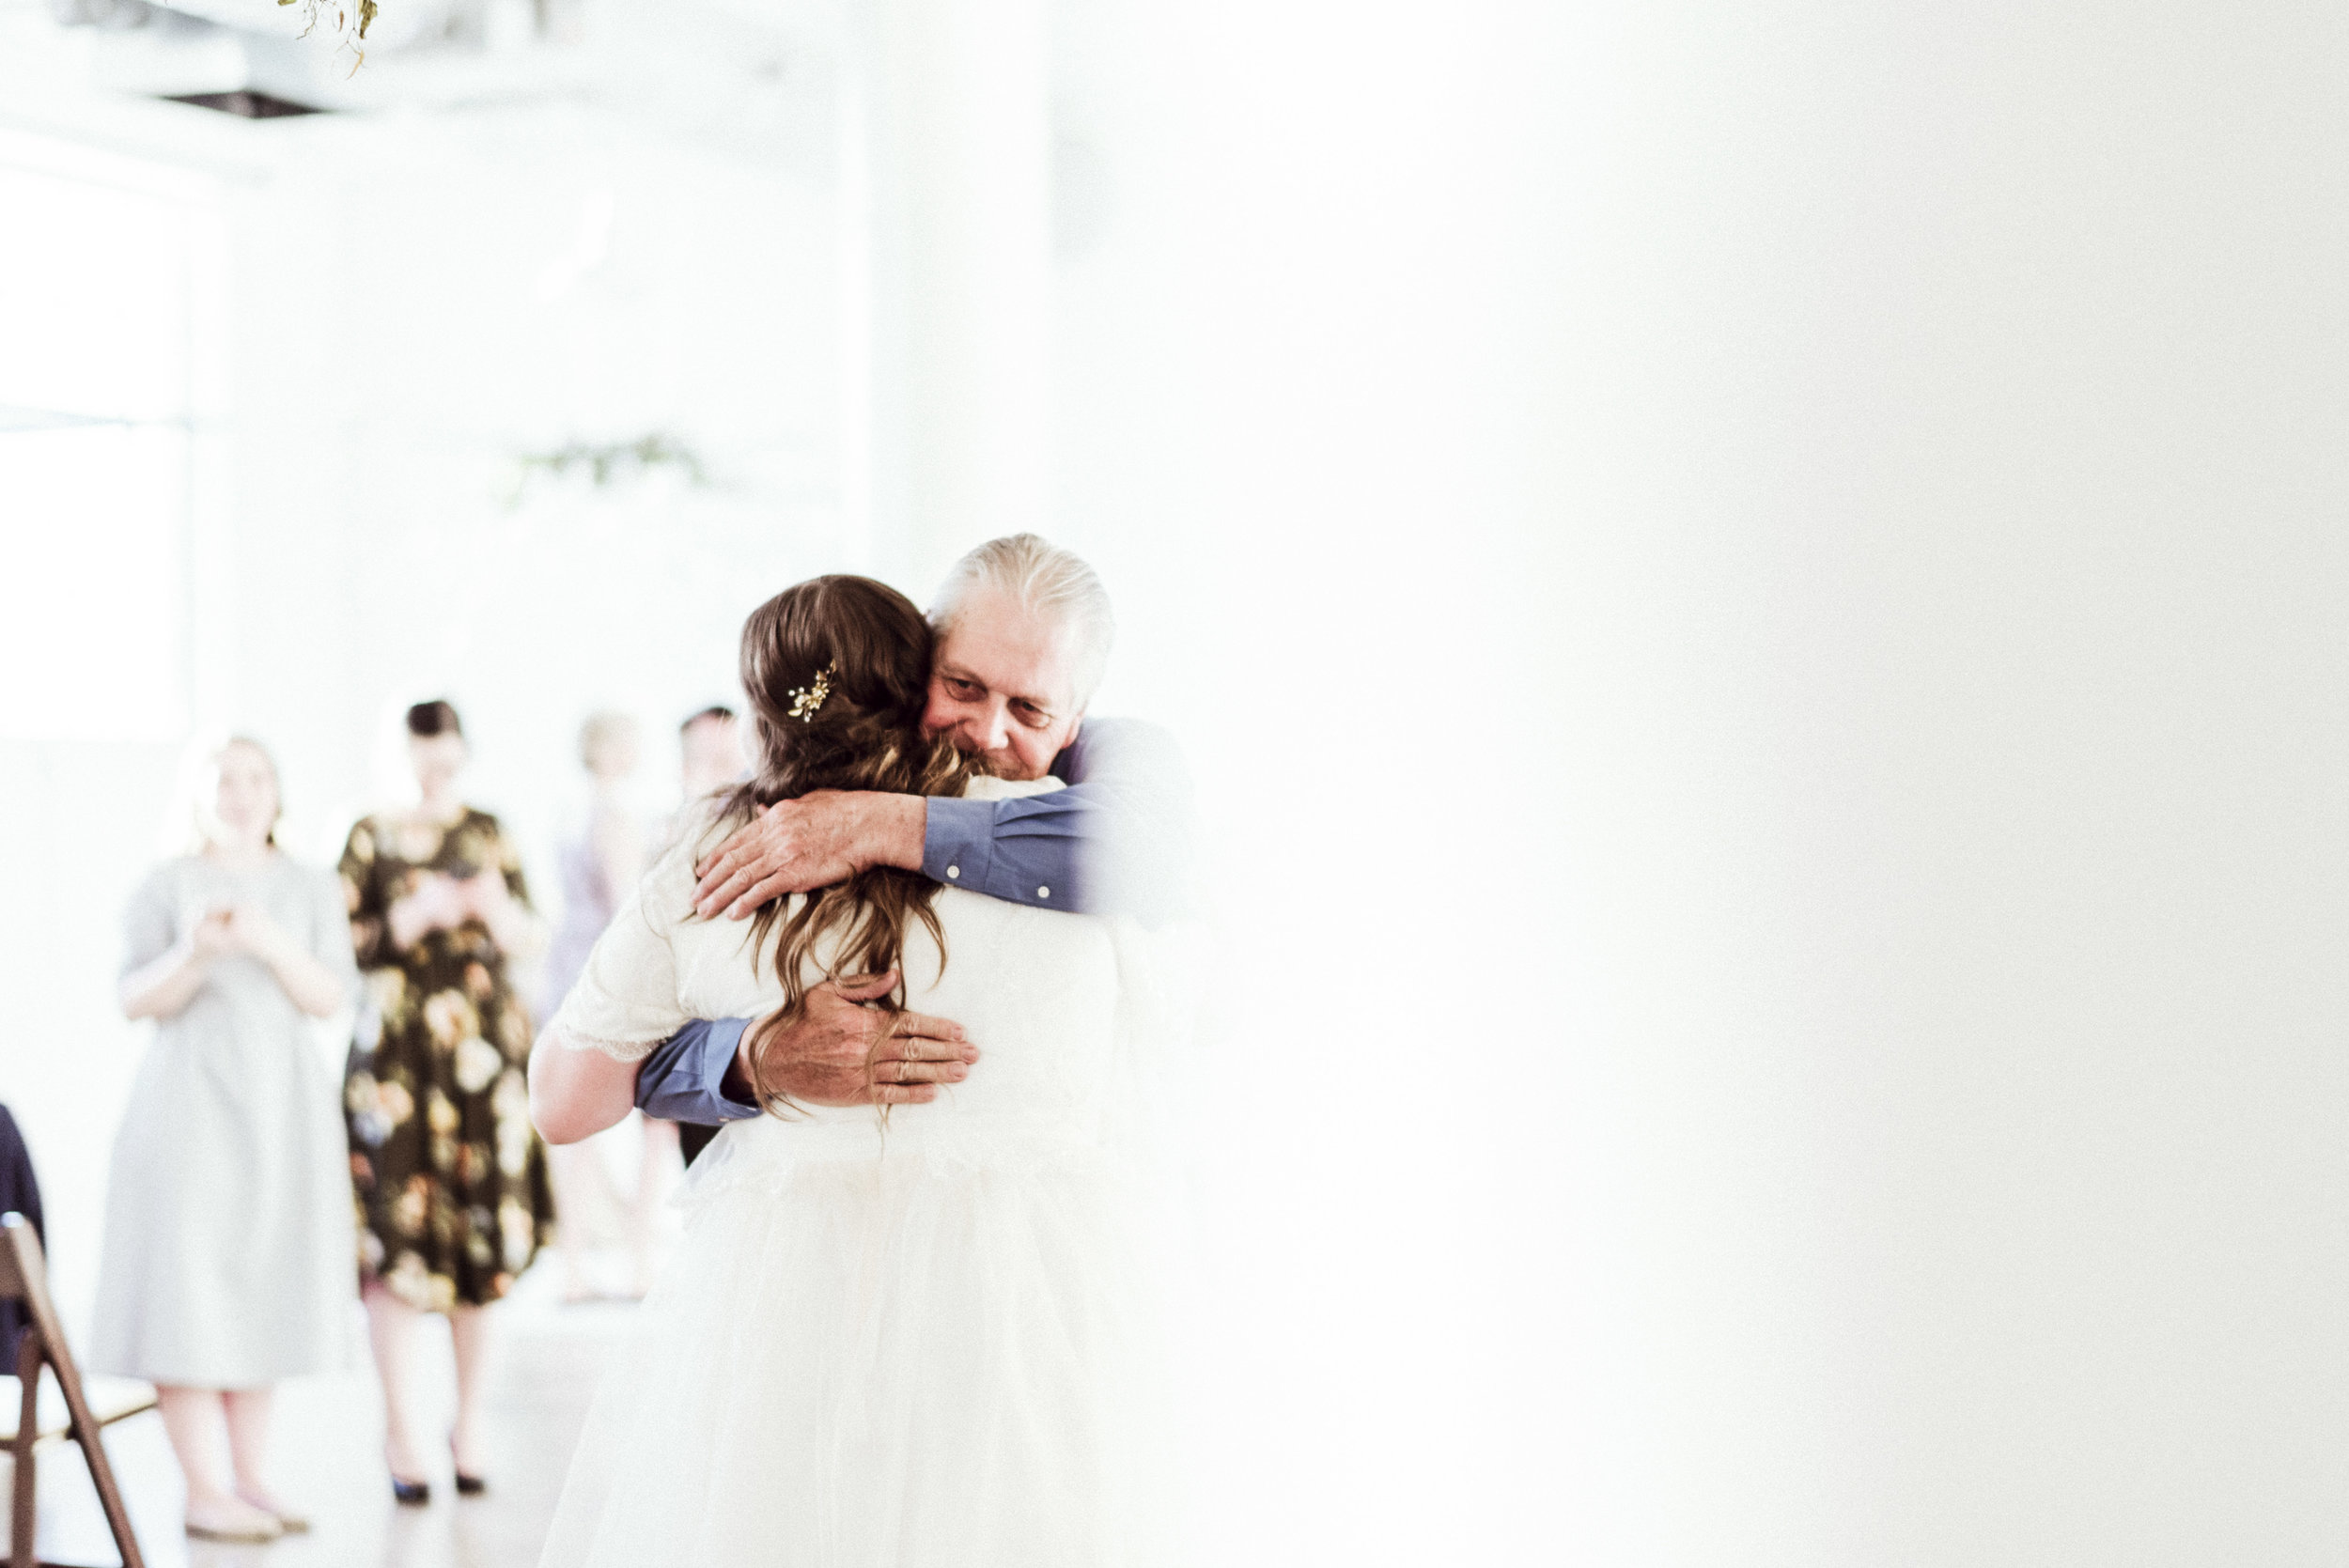 salt lake studio elevn wedding_alyssa sorenson-72.jpg